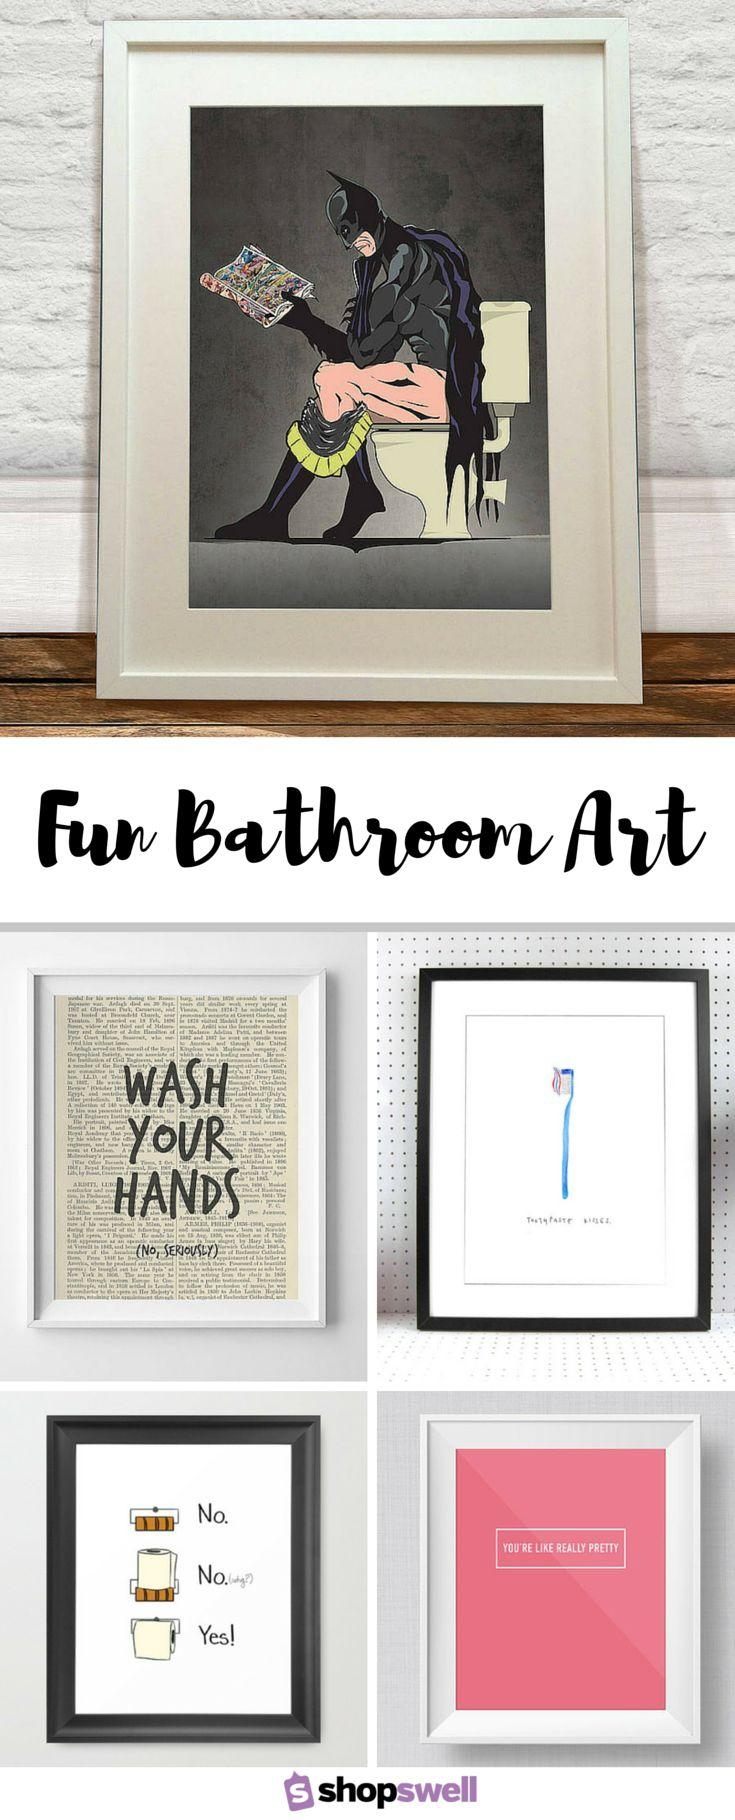 Best 25+ Bathroom Wall Art Ideas On Pinterest | Wall Decor For With Regard To Contemporary Bathroom Wall Art (View 16 of 20)